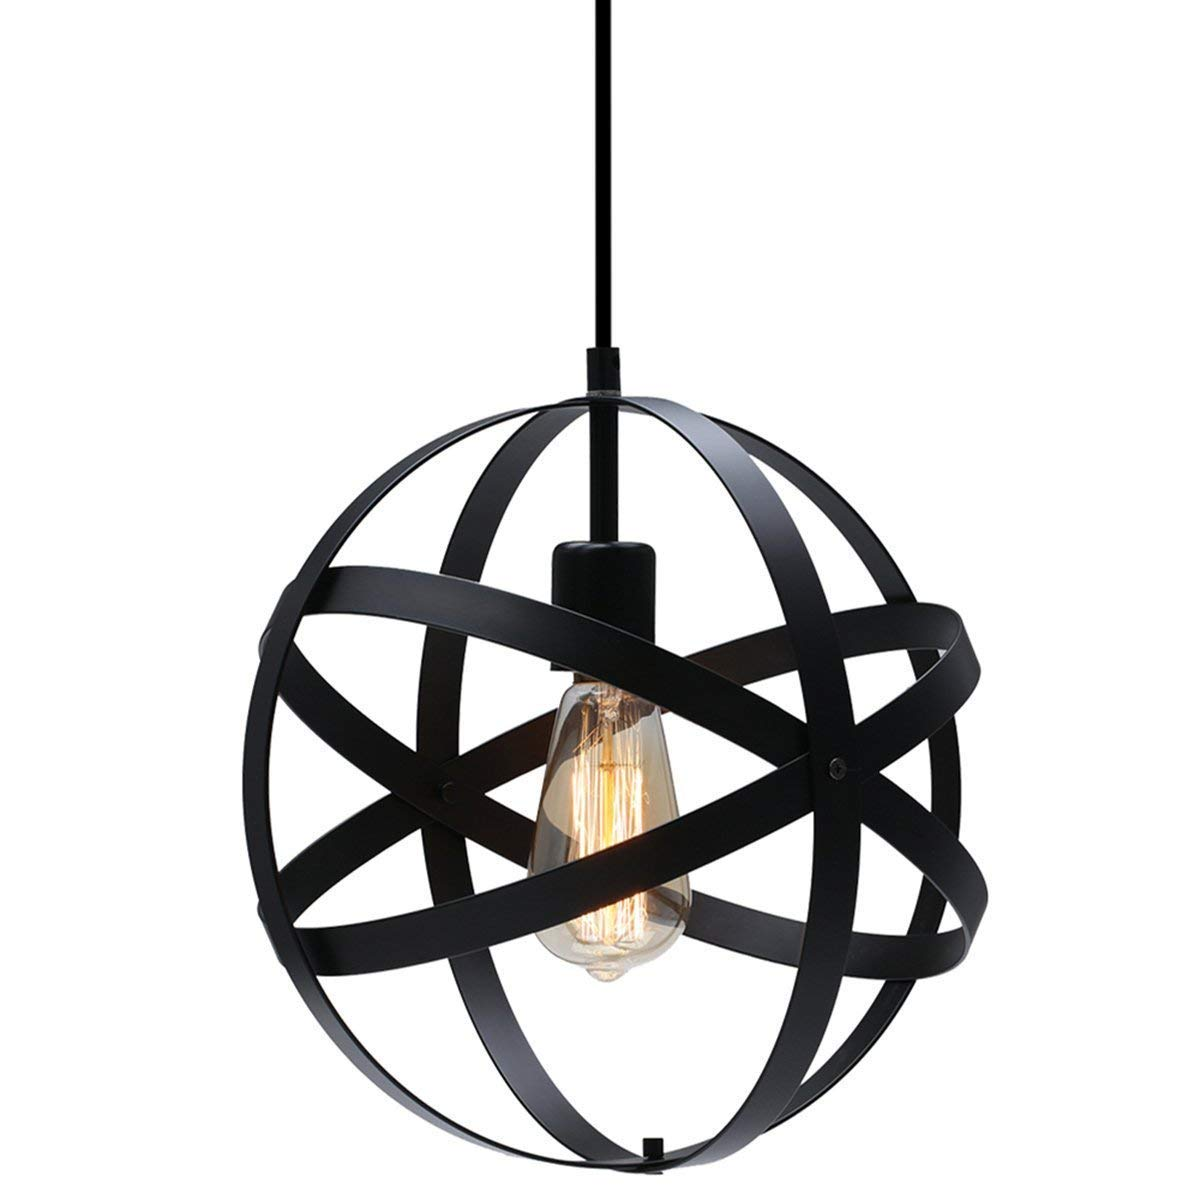 KingSo Industrial Metal Pendant Light, Spherical Ceiling Light Globe Hanging Light Fixture for Kitchen Island Dining Table Bedroom Hallway by KINGSO (Image #1)